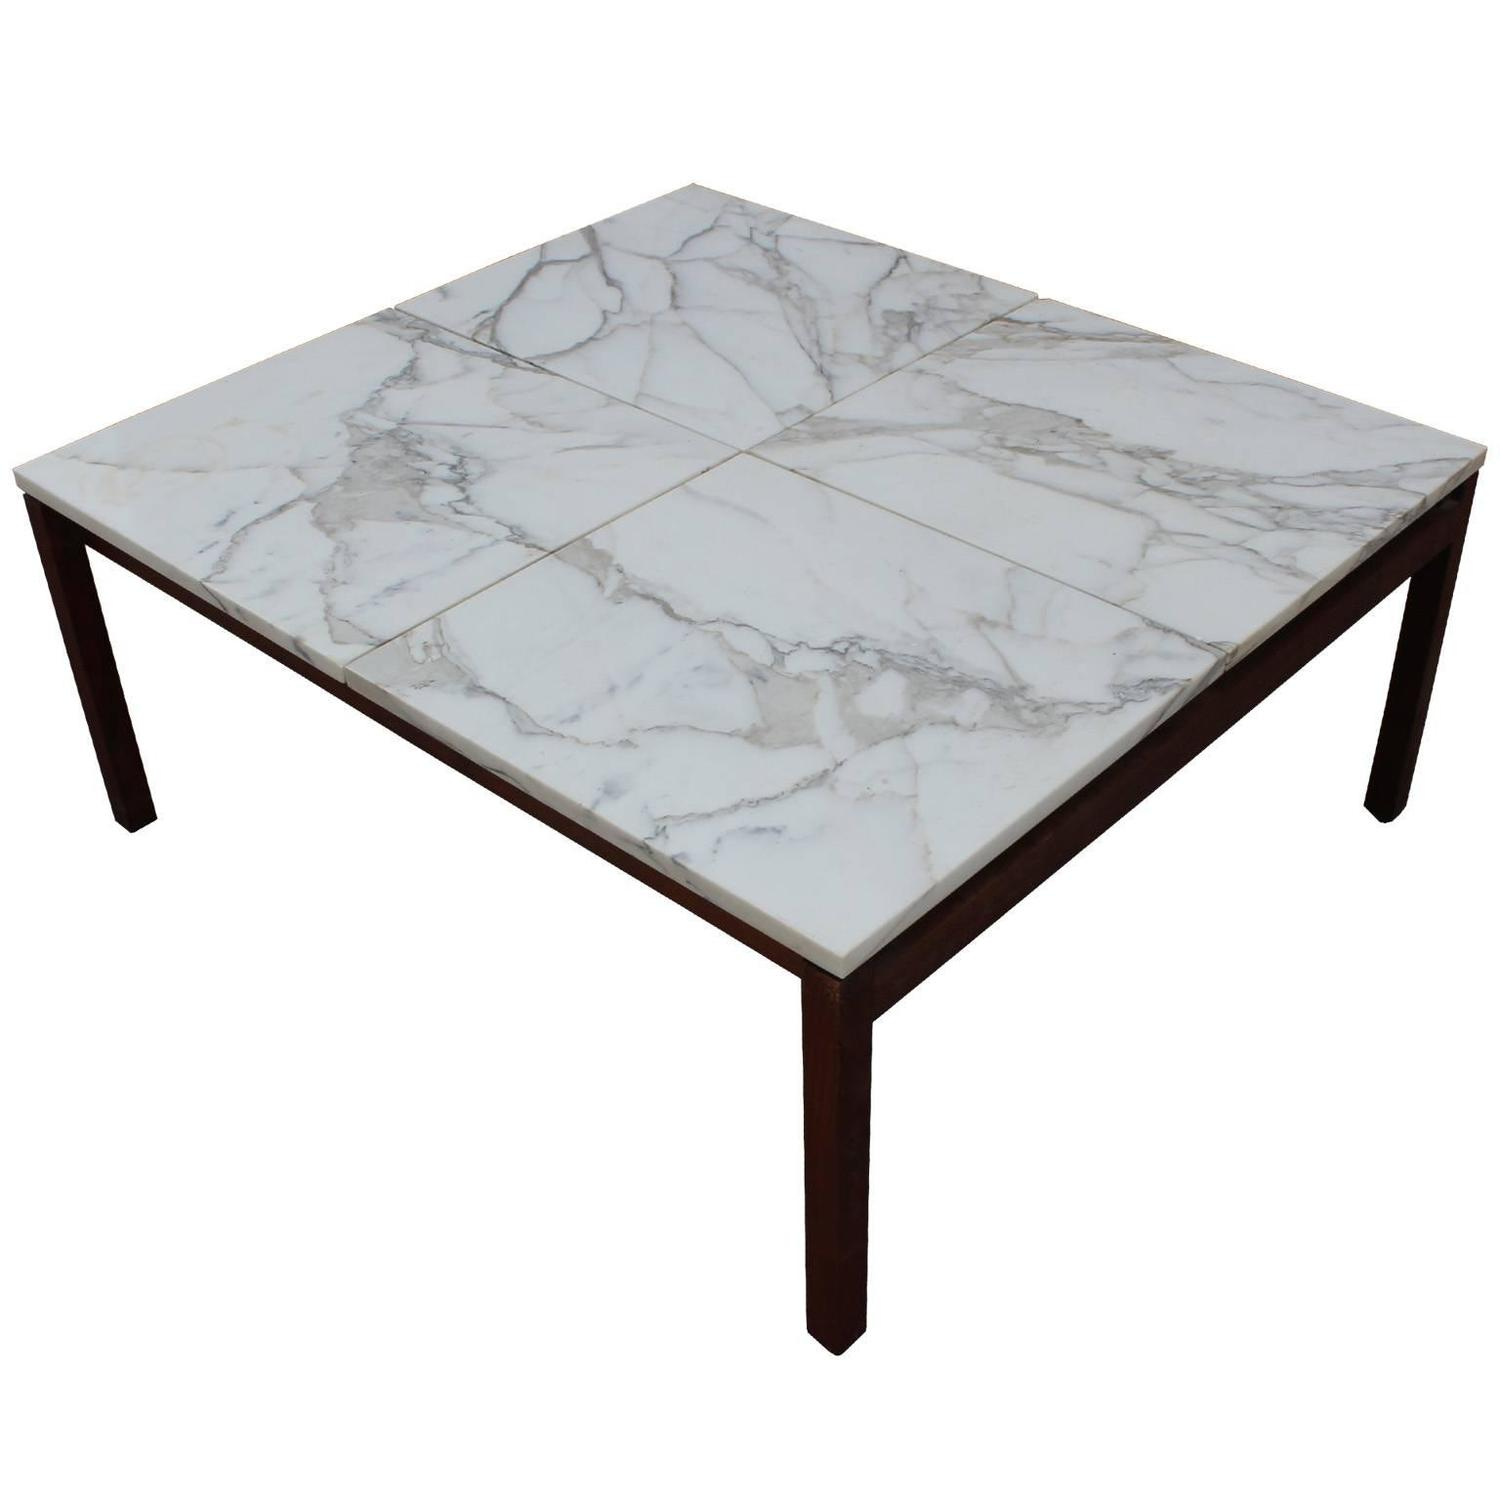 Stunning Marble Square Knoll Lewis Butler Coffee Table For Sale At 1stdibs